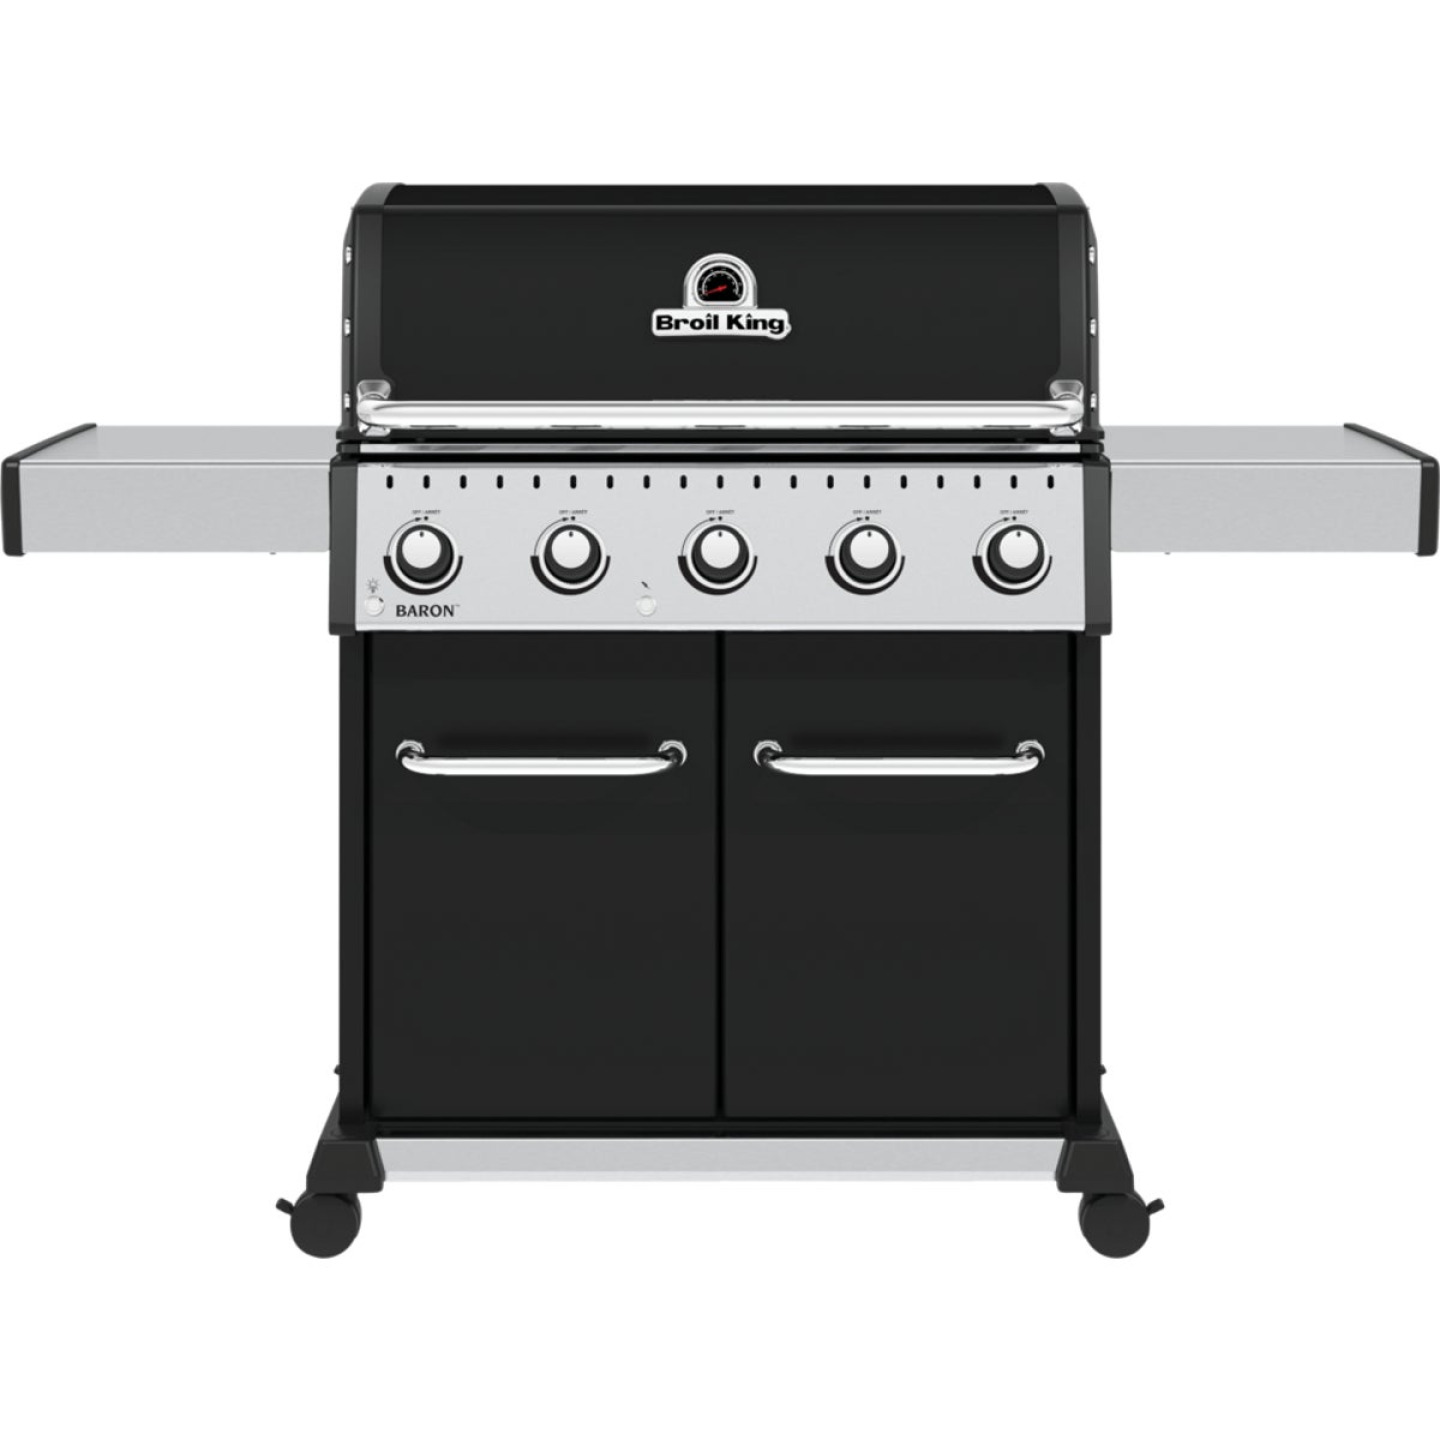 Broil King Baron 520 Pro 5-Burner Black 45,000 BTU LP Gas Grill Image 1